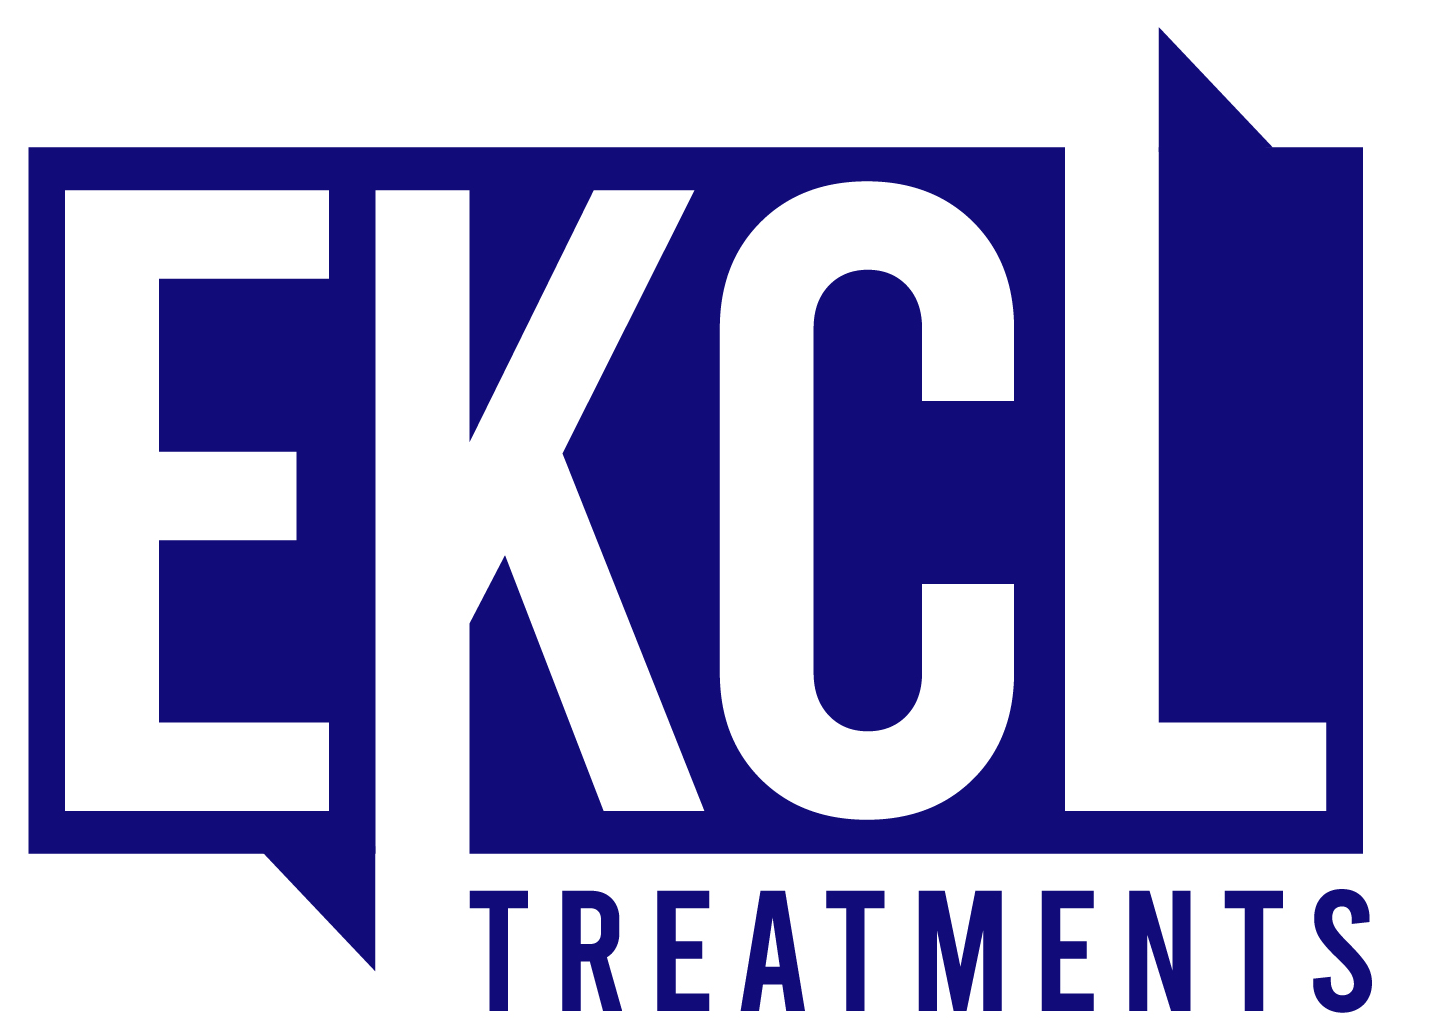 EKCL Treatments